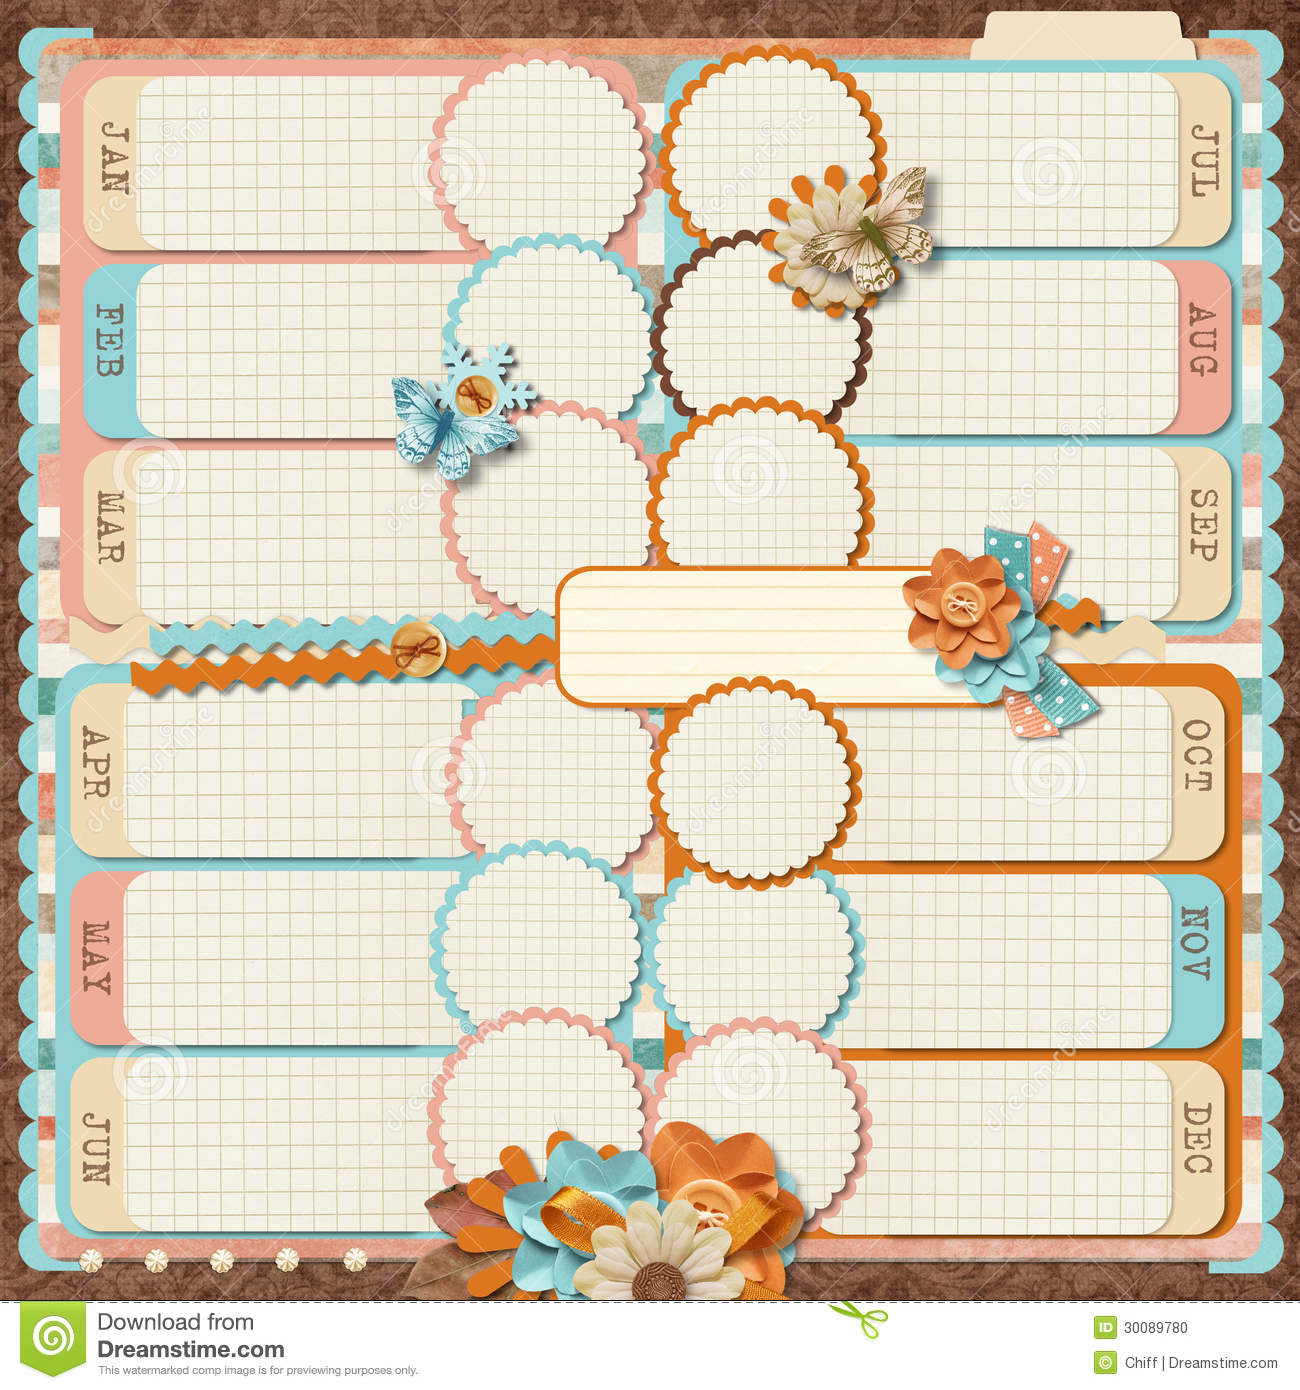 templates for scrapbooking to print - retro family album 12 months scrapbooking templates